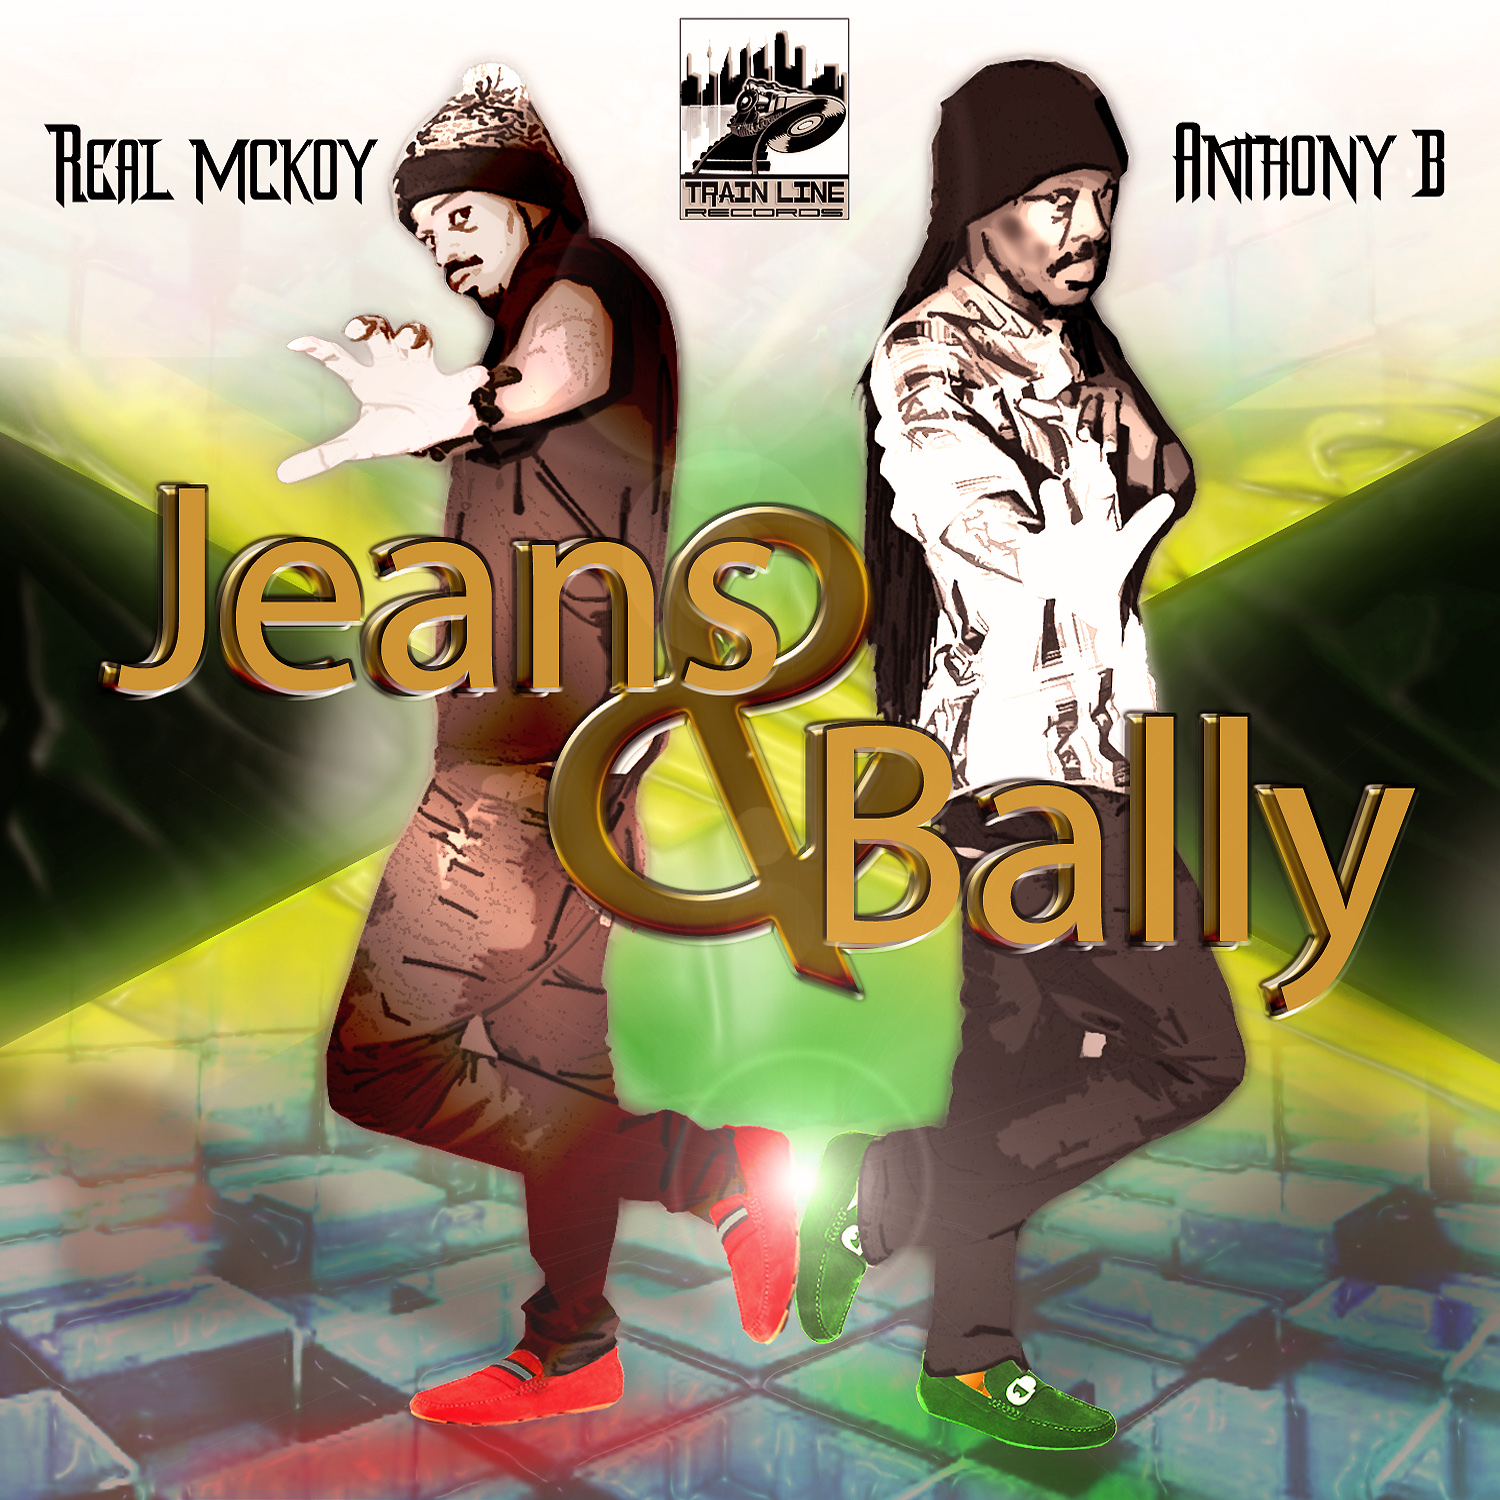 ANTHONY B FT REAL MCKOY – JEANS & BALLY – TRAIN LINE RECORDS